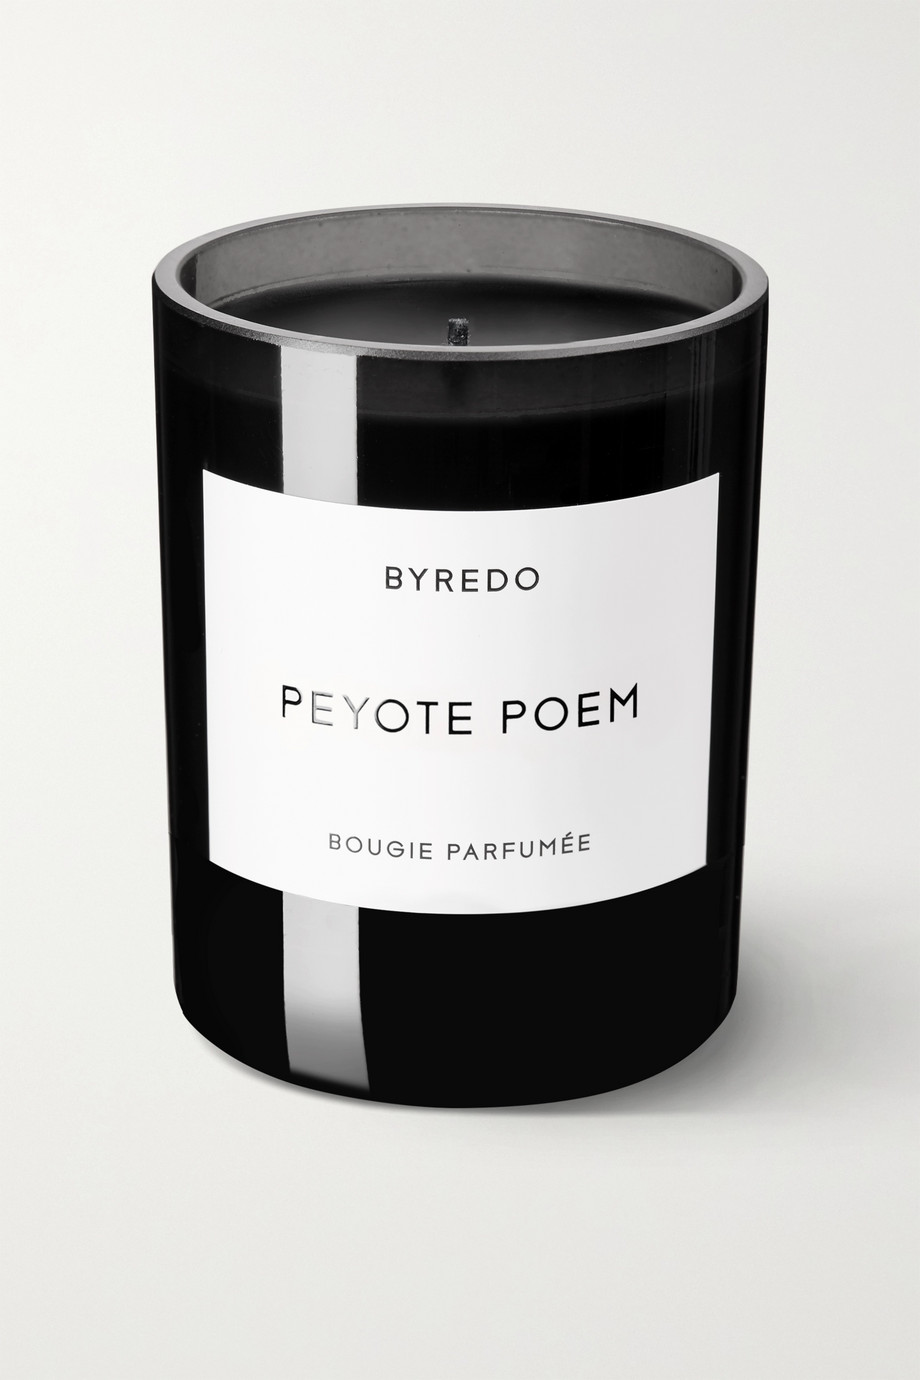 Byredo Peyote Poem scented candle, 240g